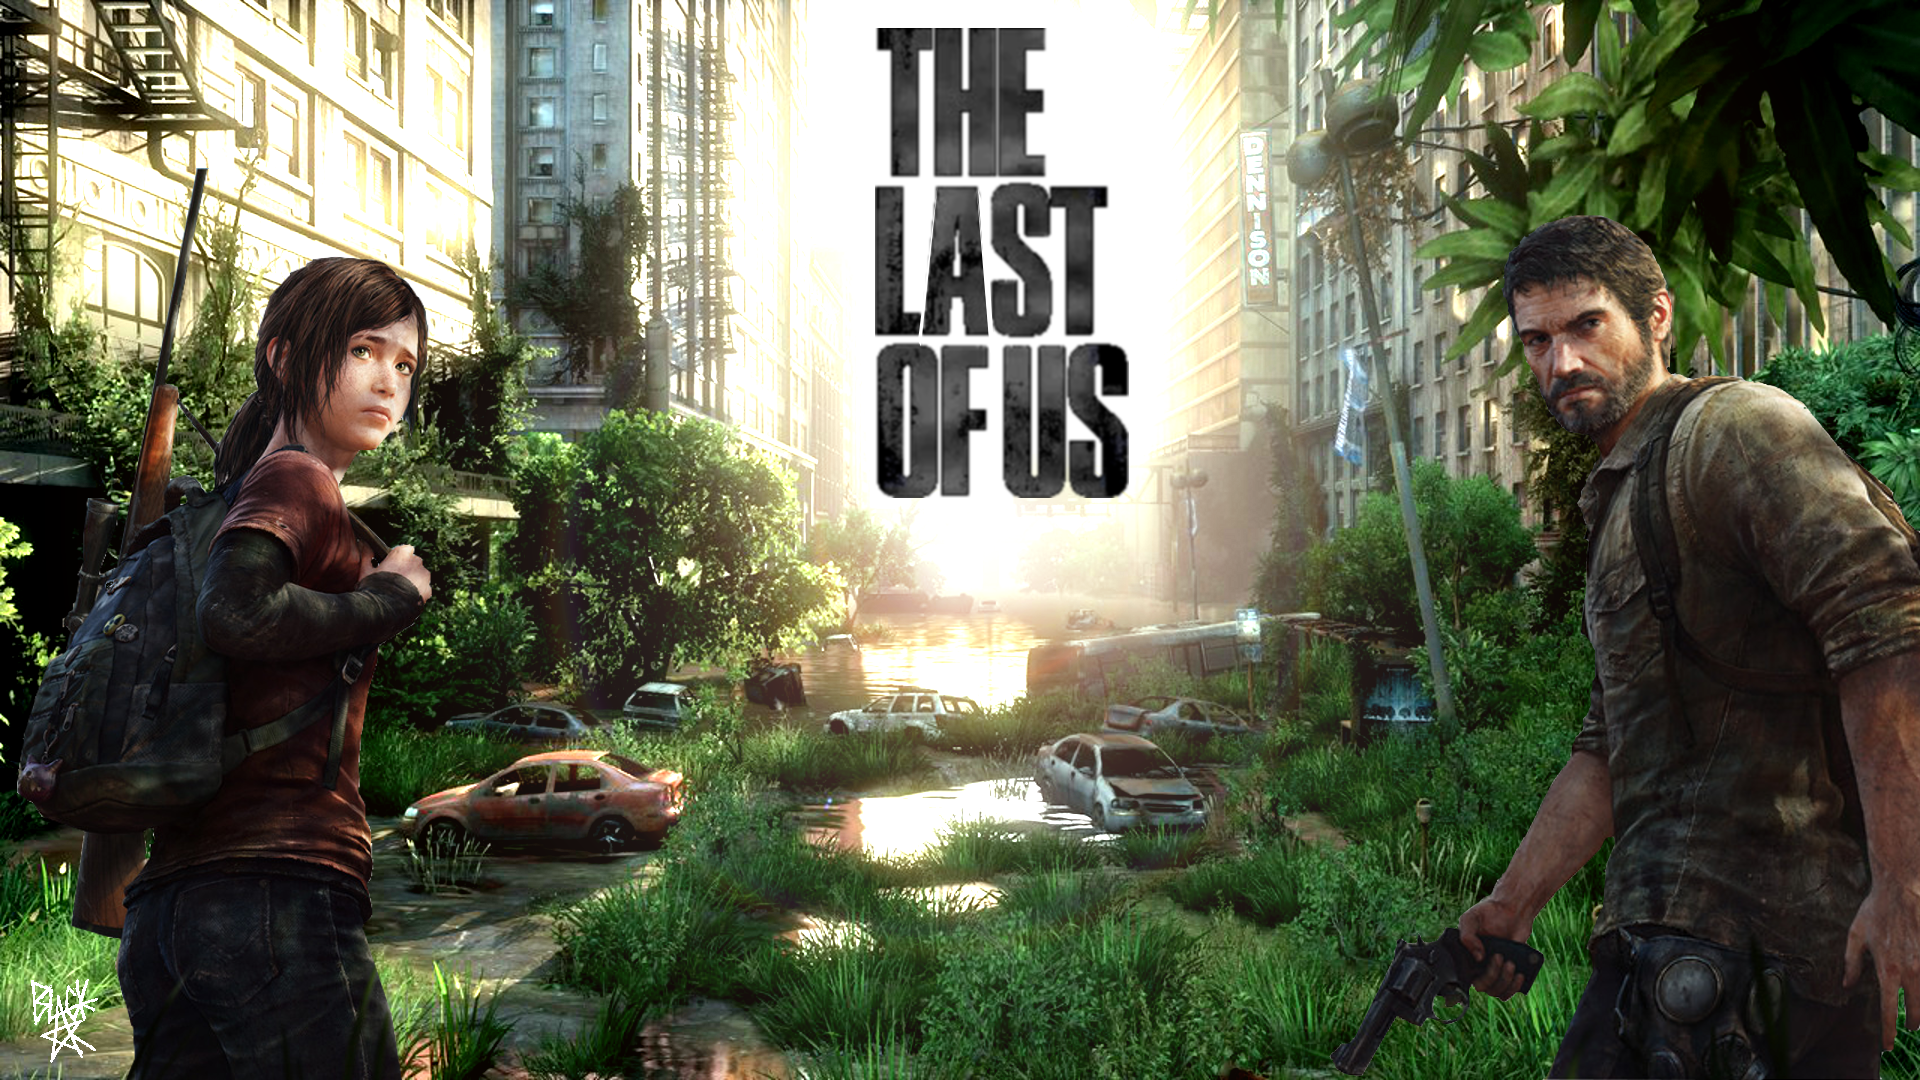 The Last Of Us 39623271 Wallpaper for Free | Cool High Resolution Pics